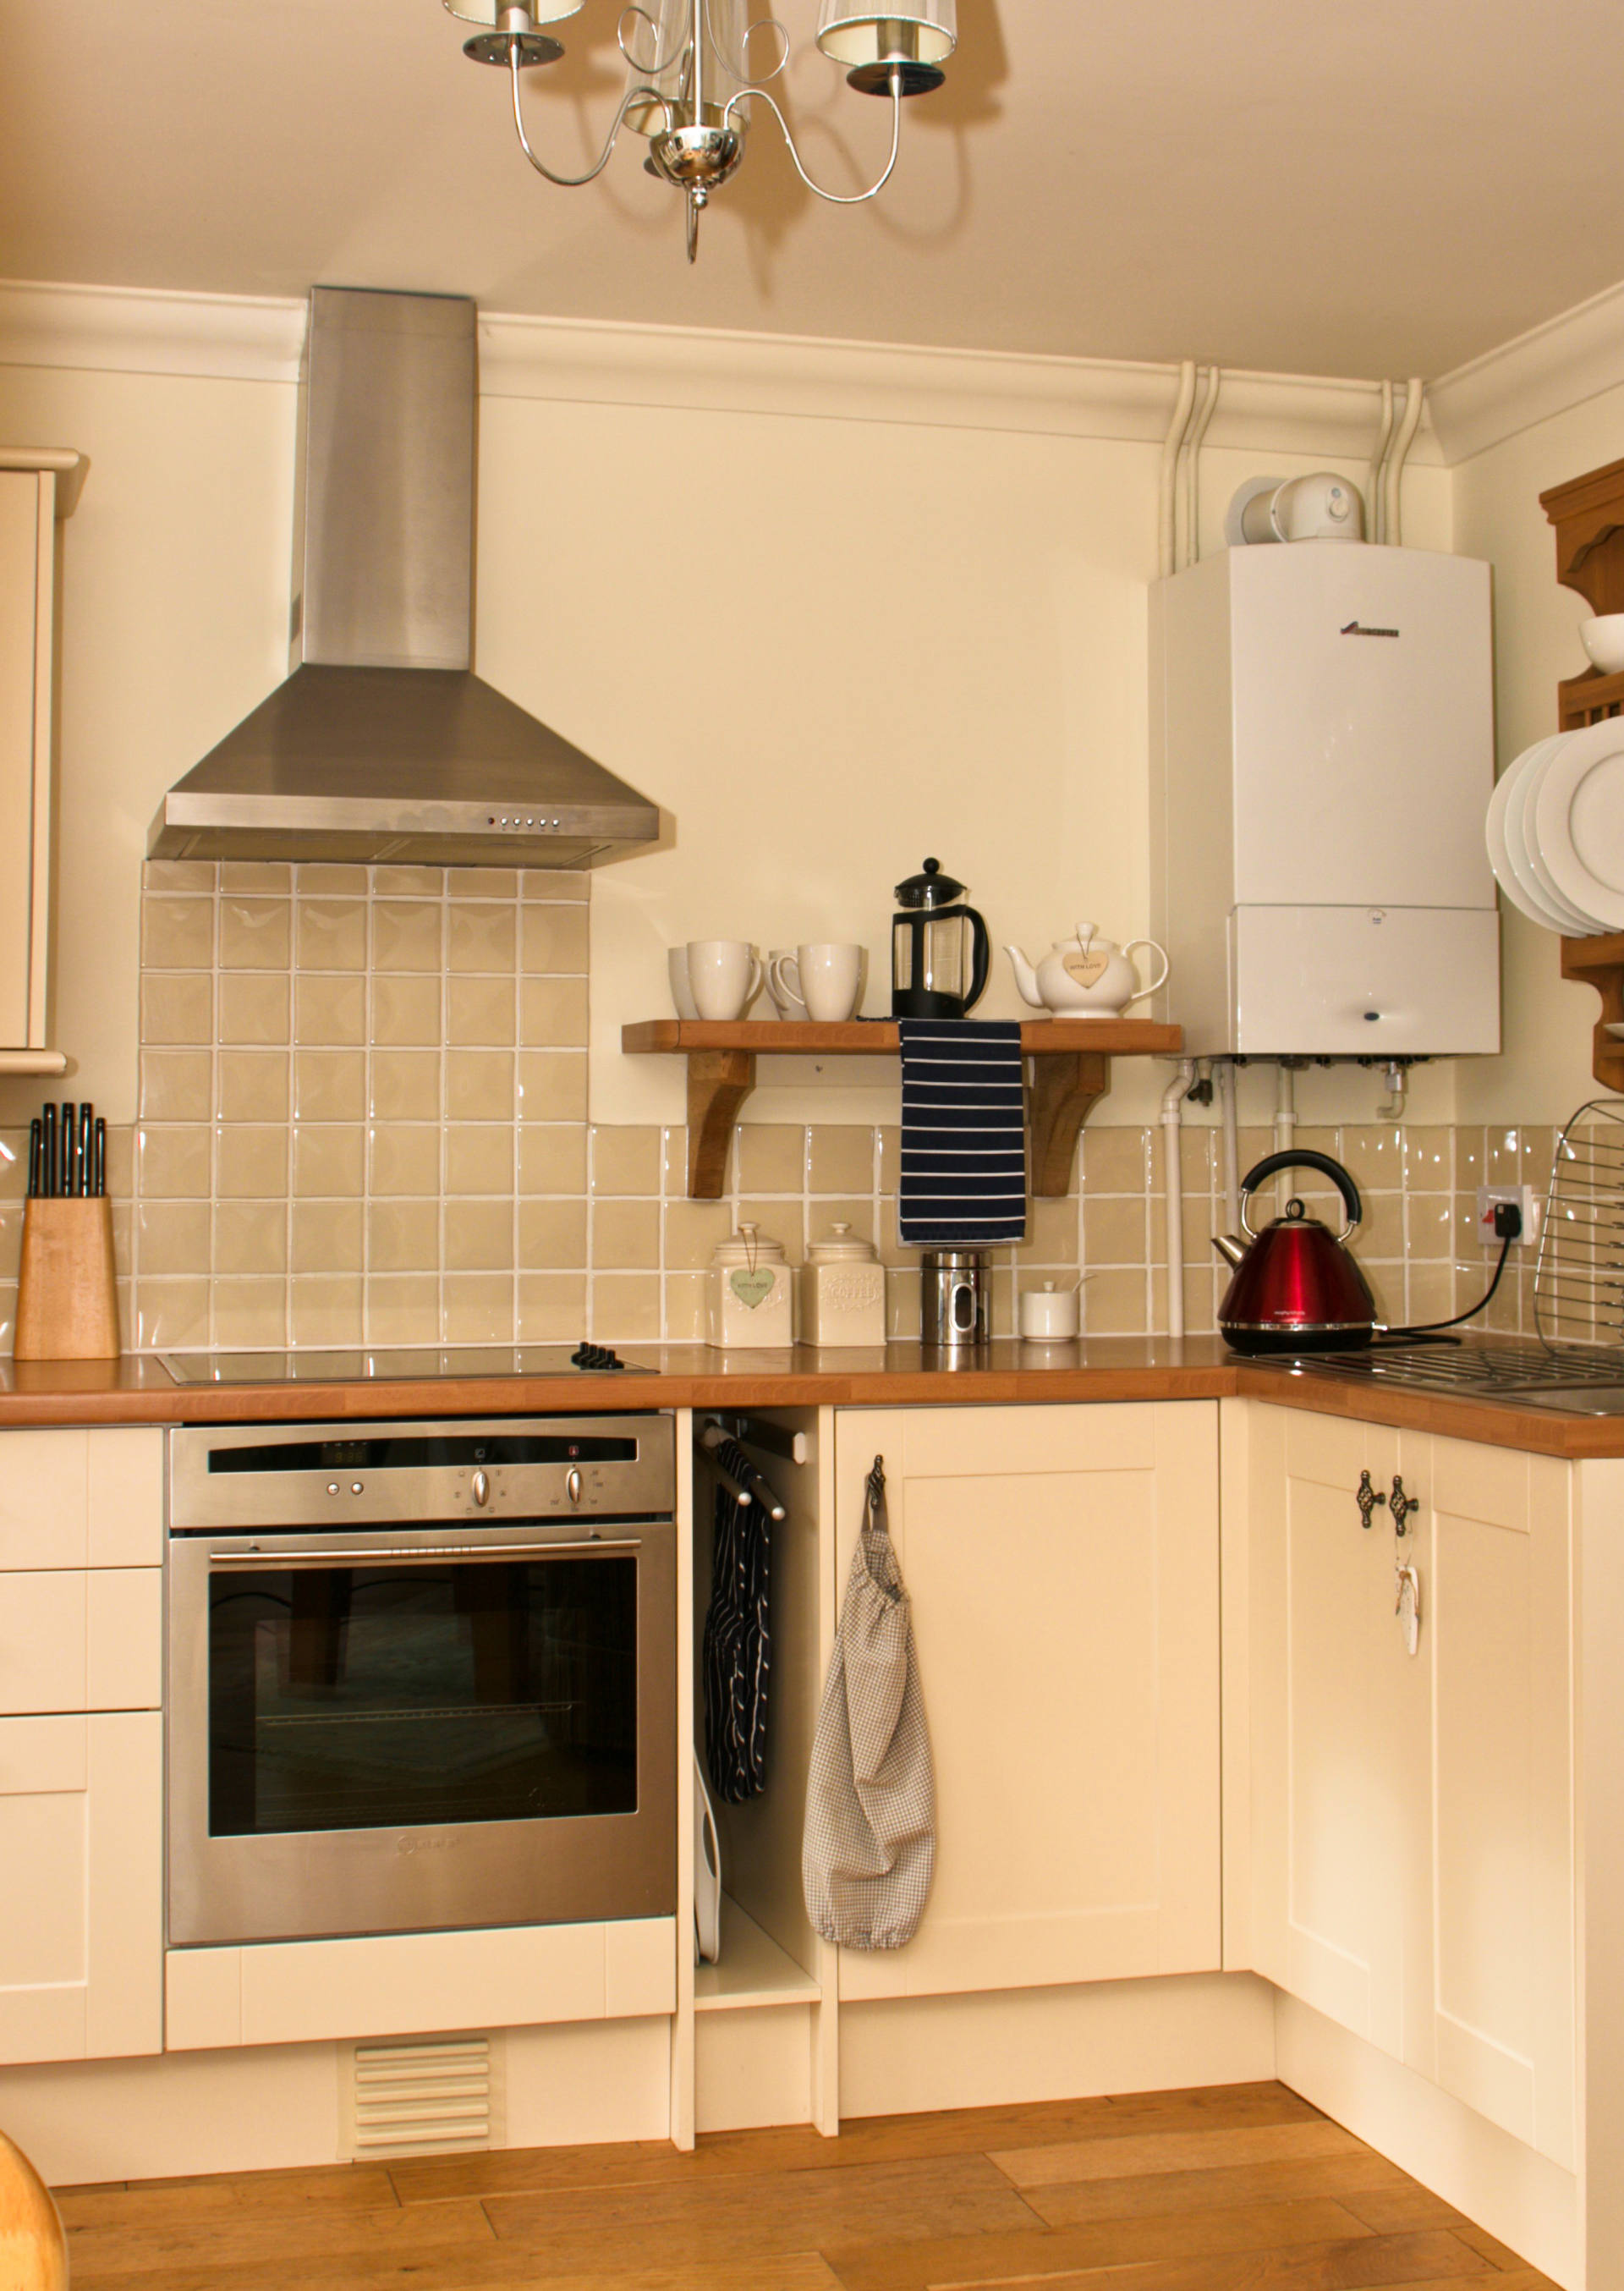 Kitchen amenities and facilities.